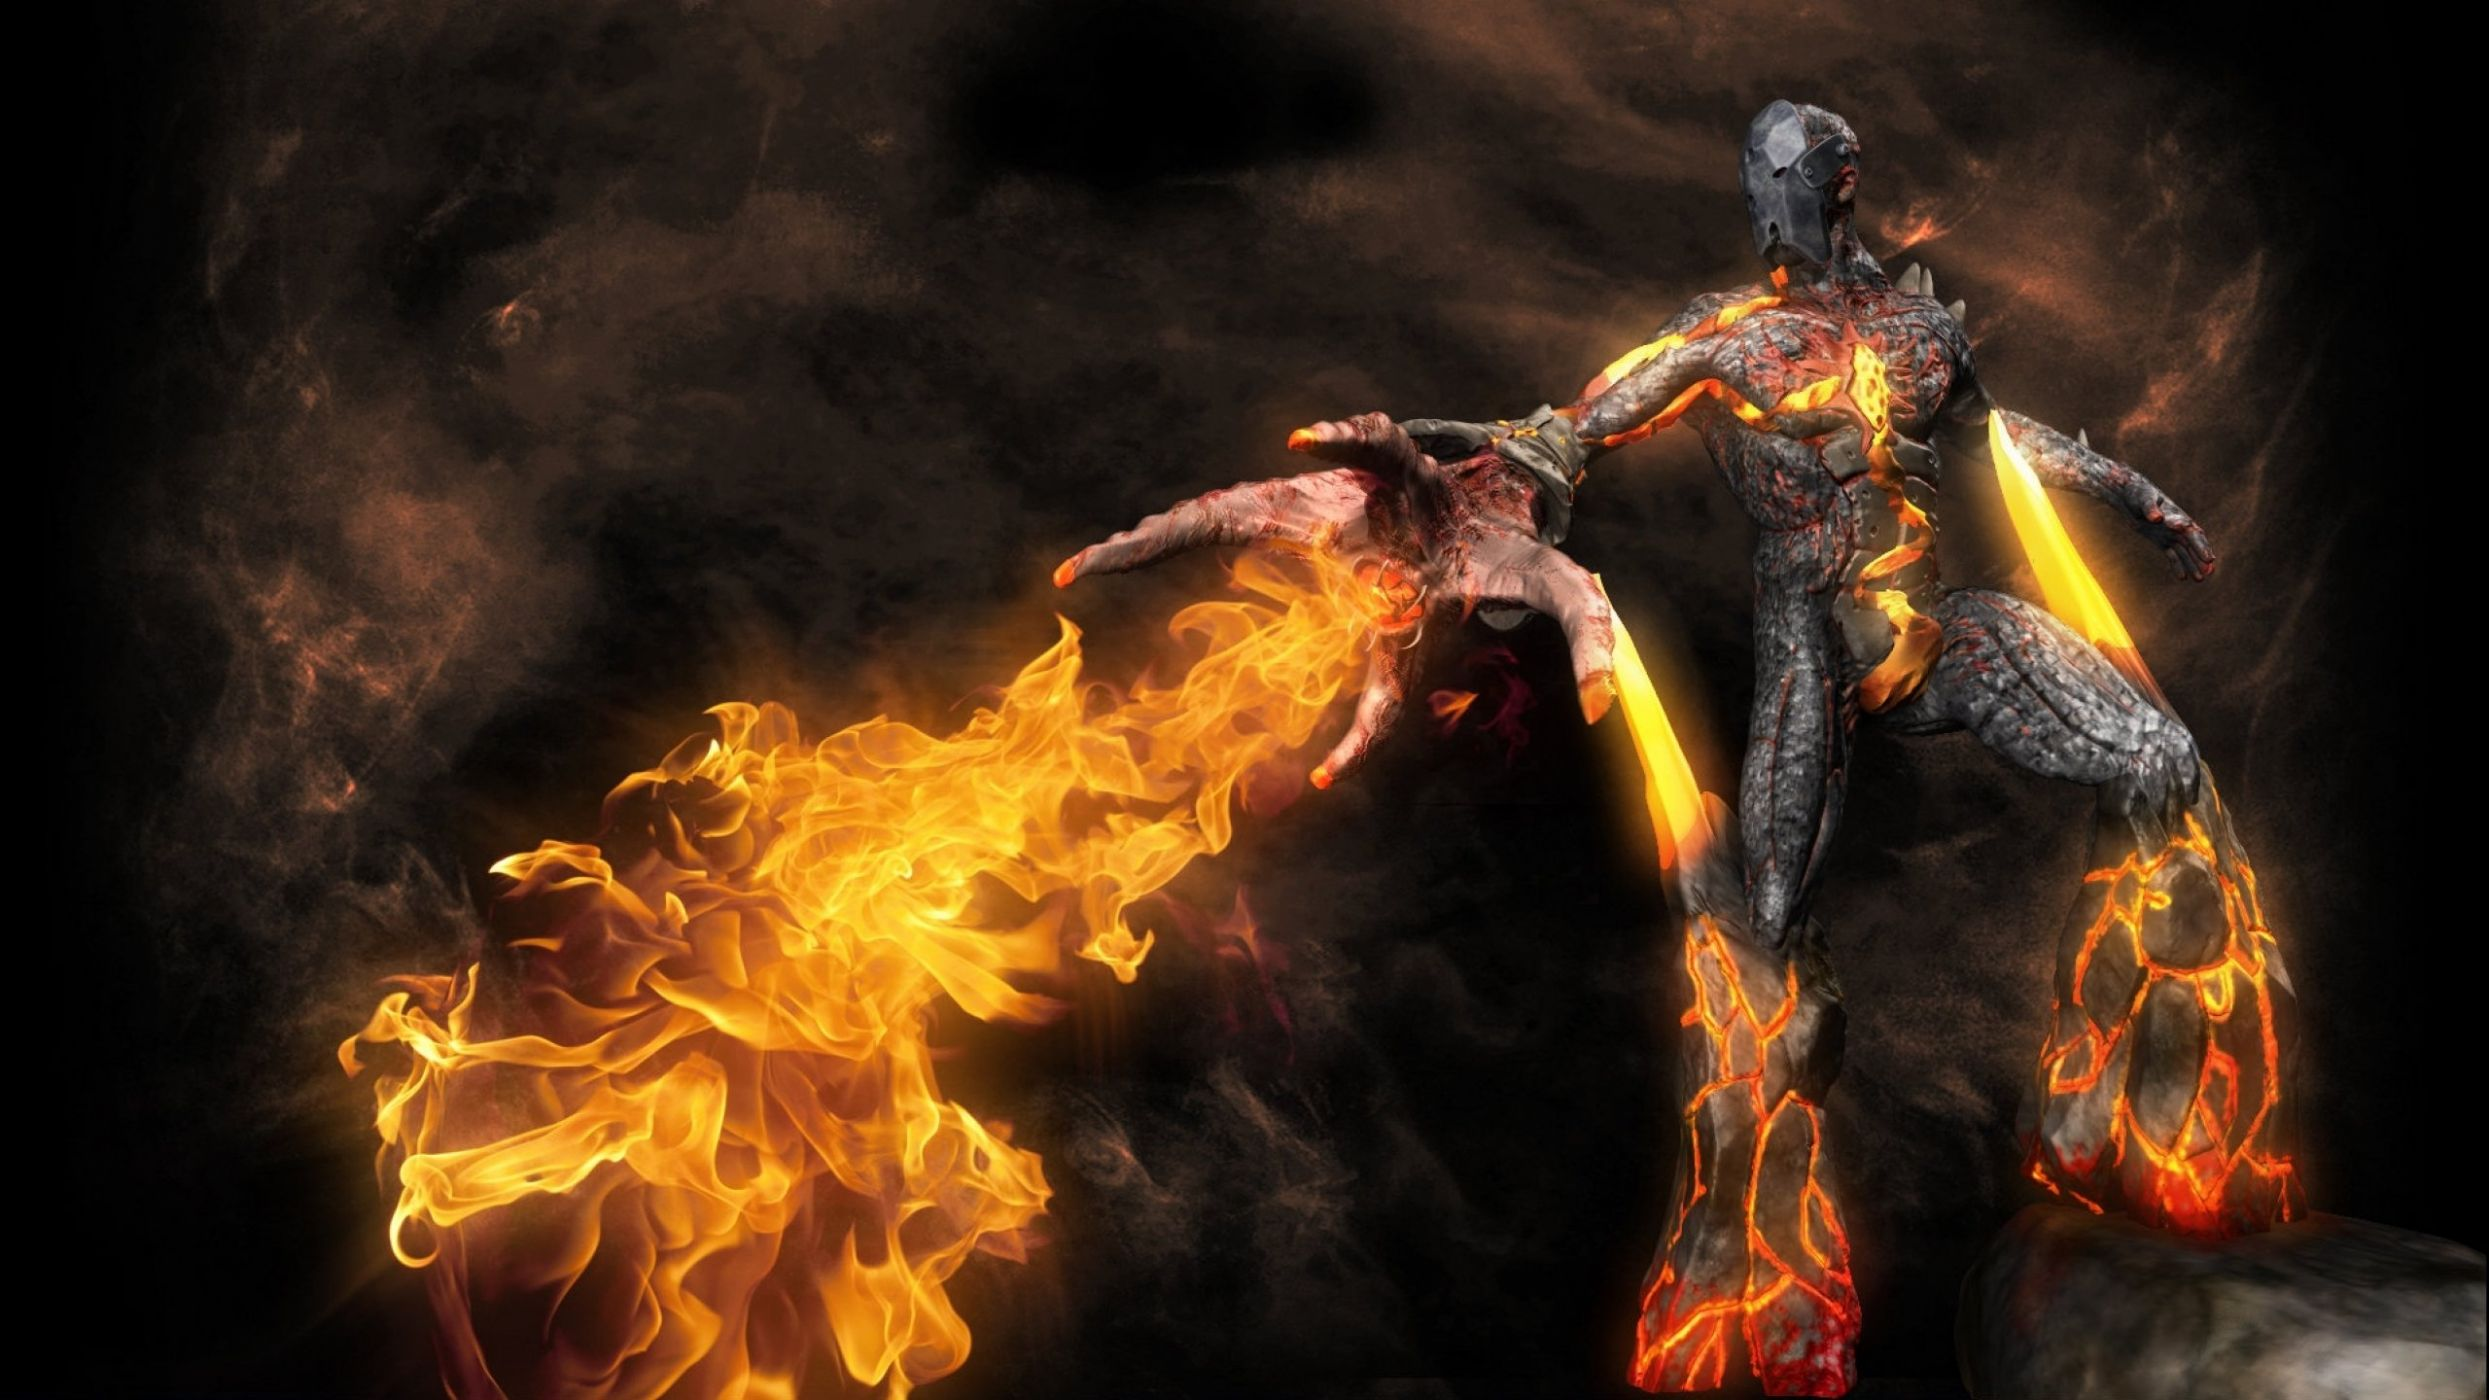 ghost and demon wallpapers free download hd latest new - HD2489×1400